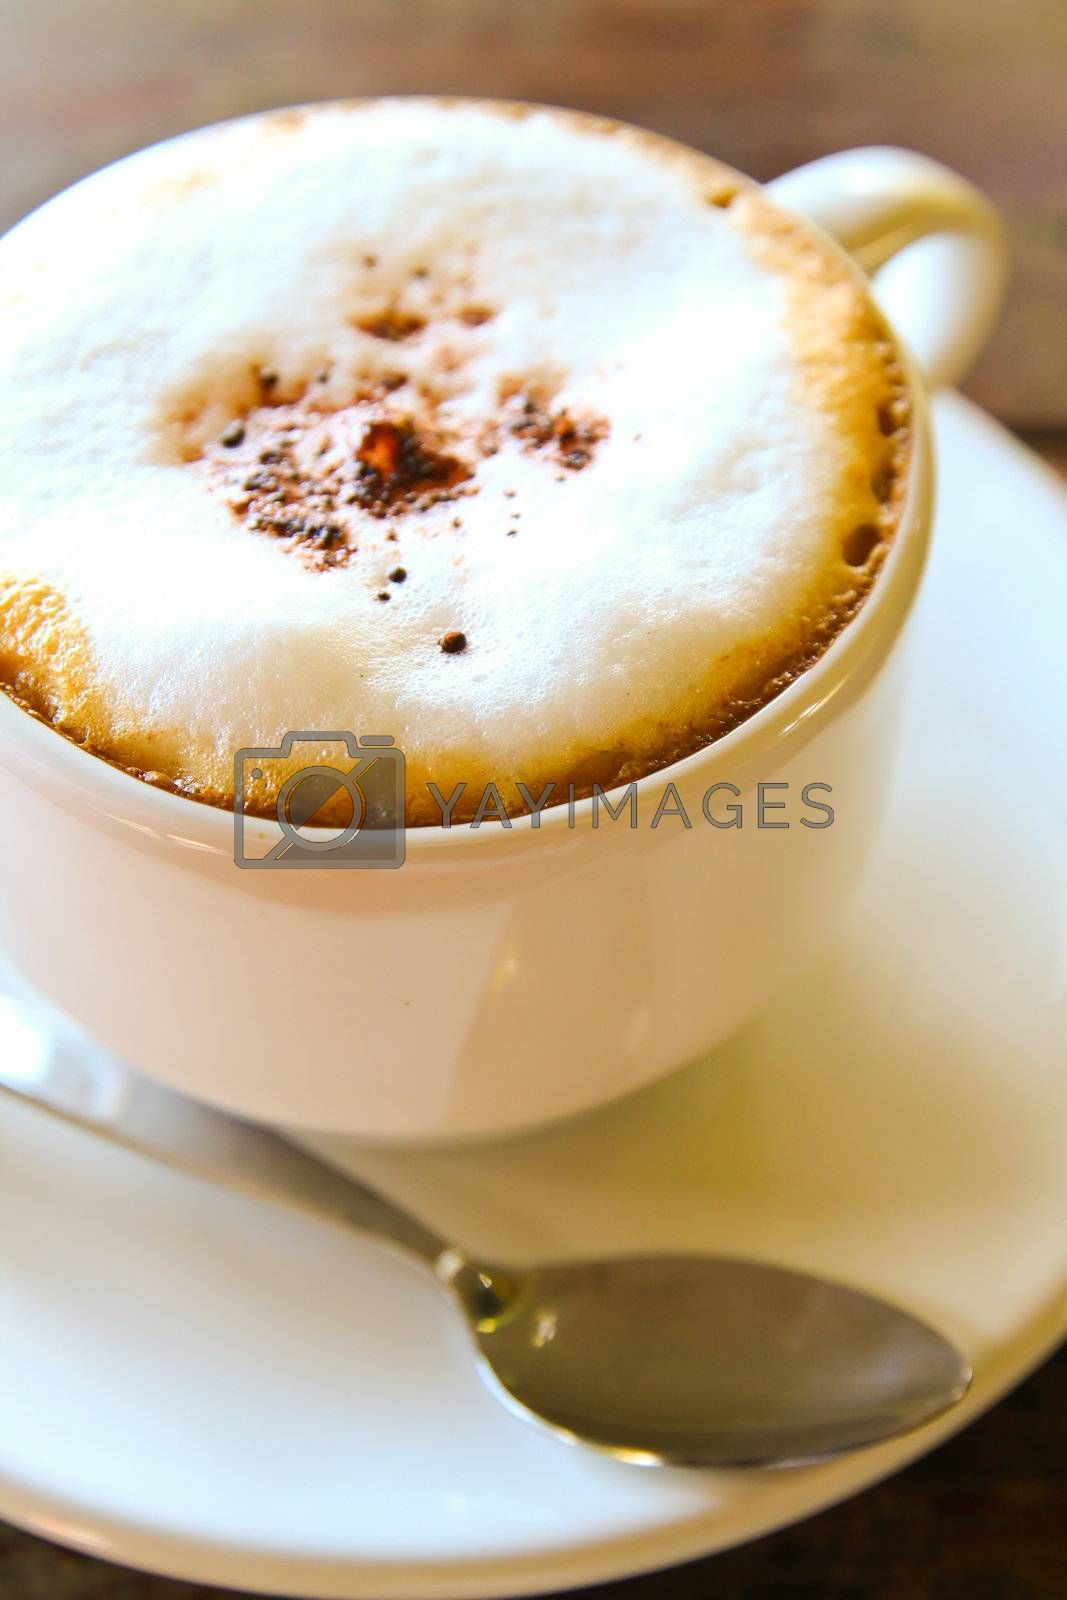 Cappuccino cup with metal spoon